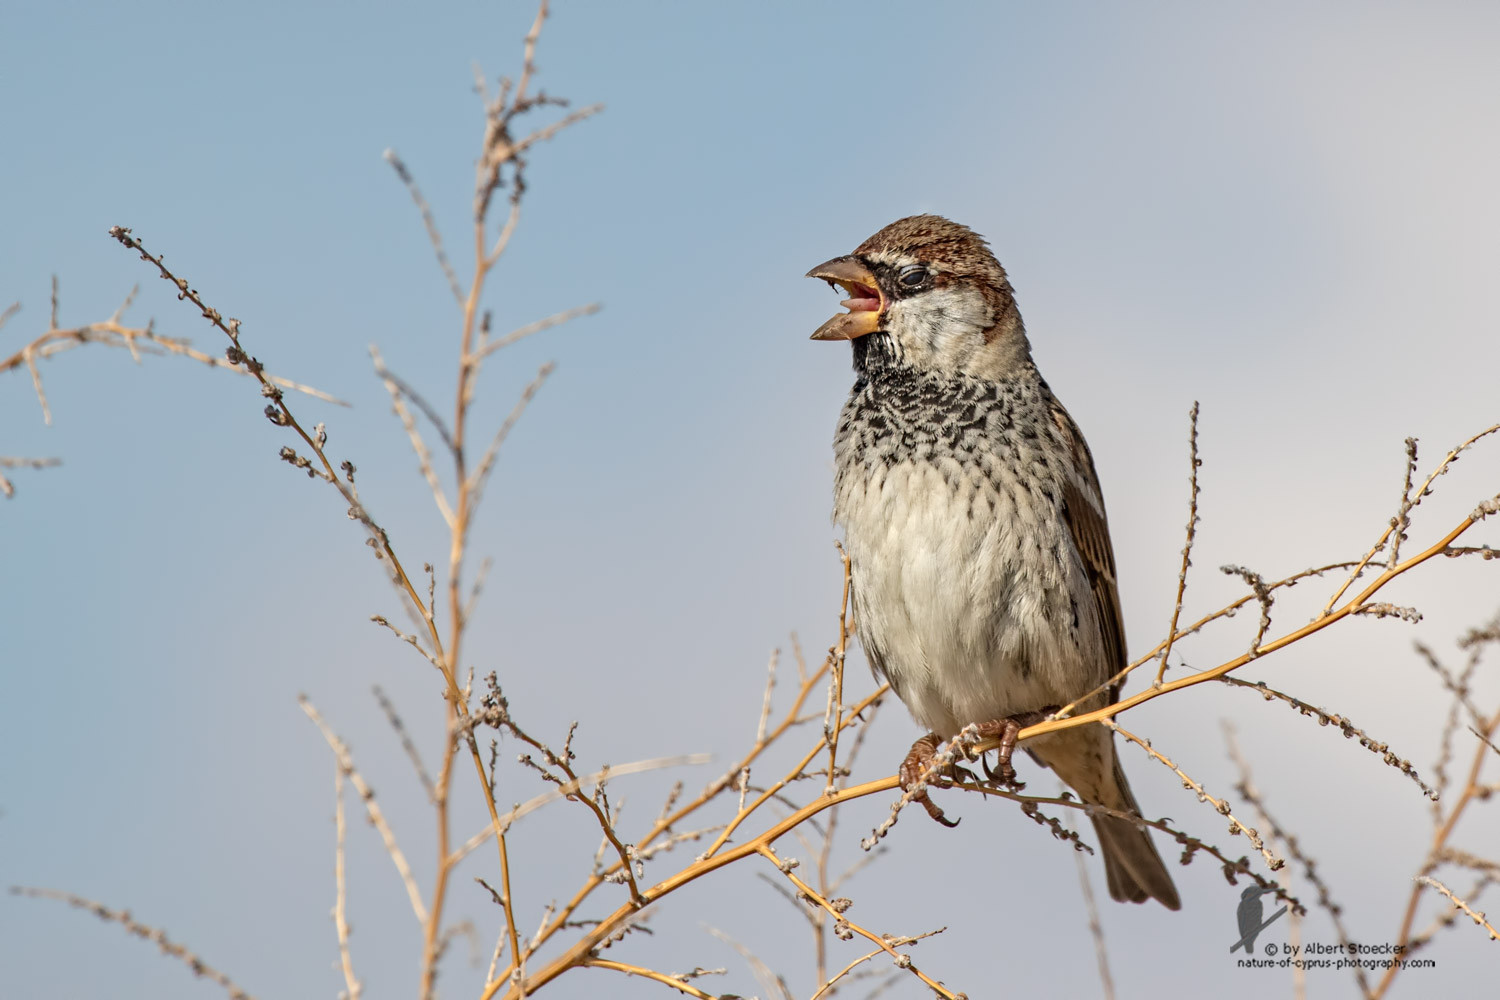 Passer hispaniolensis - Spanish Sparrow - Weidensperling, Cyprus, Akrotiri - Zakaki, January 2016